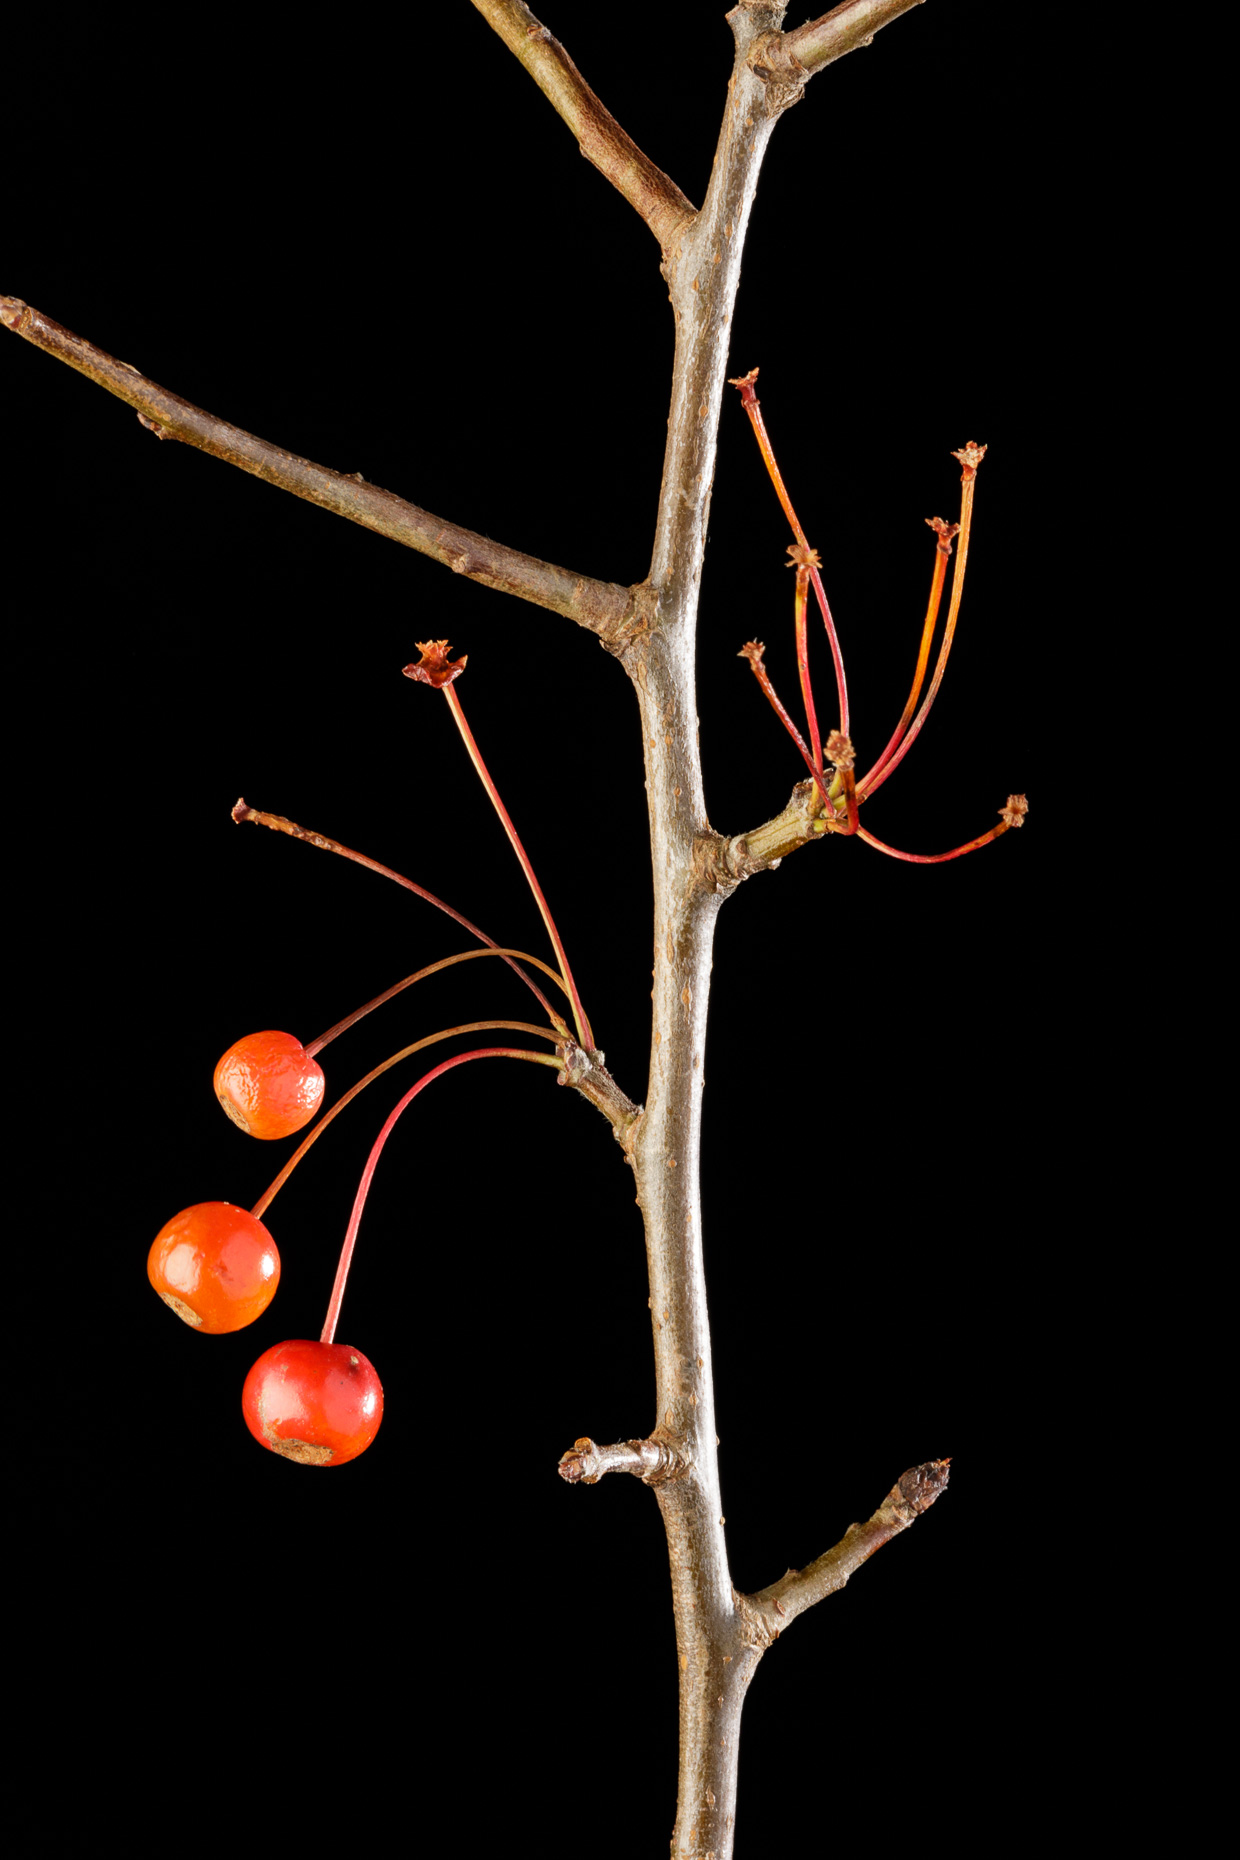 Crapapple stem and fruit | Smithsonian Gardens